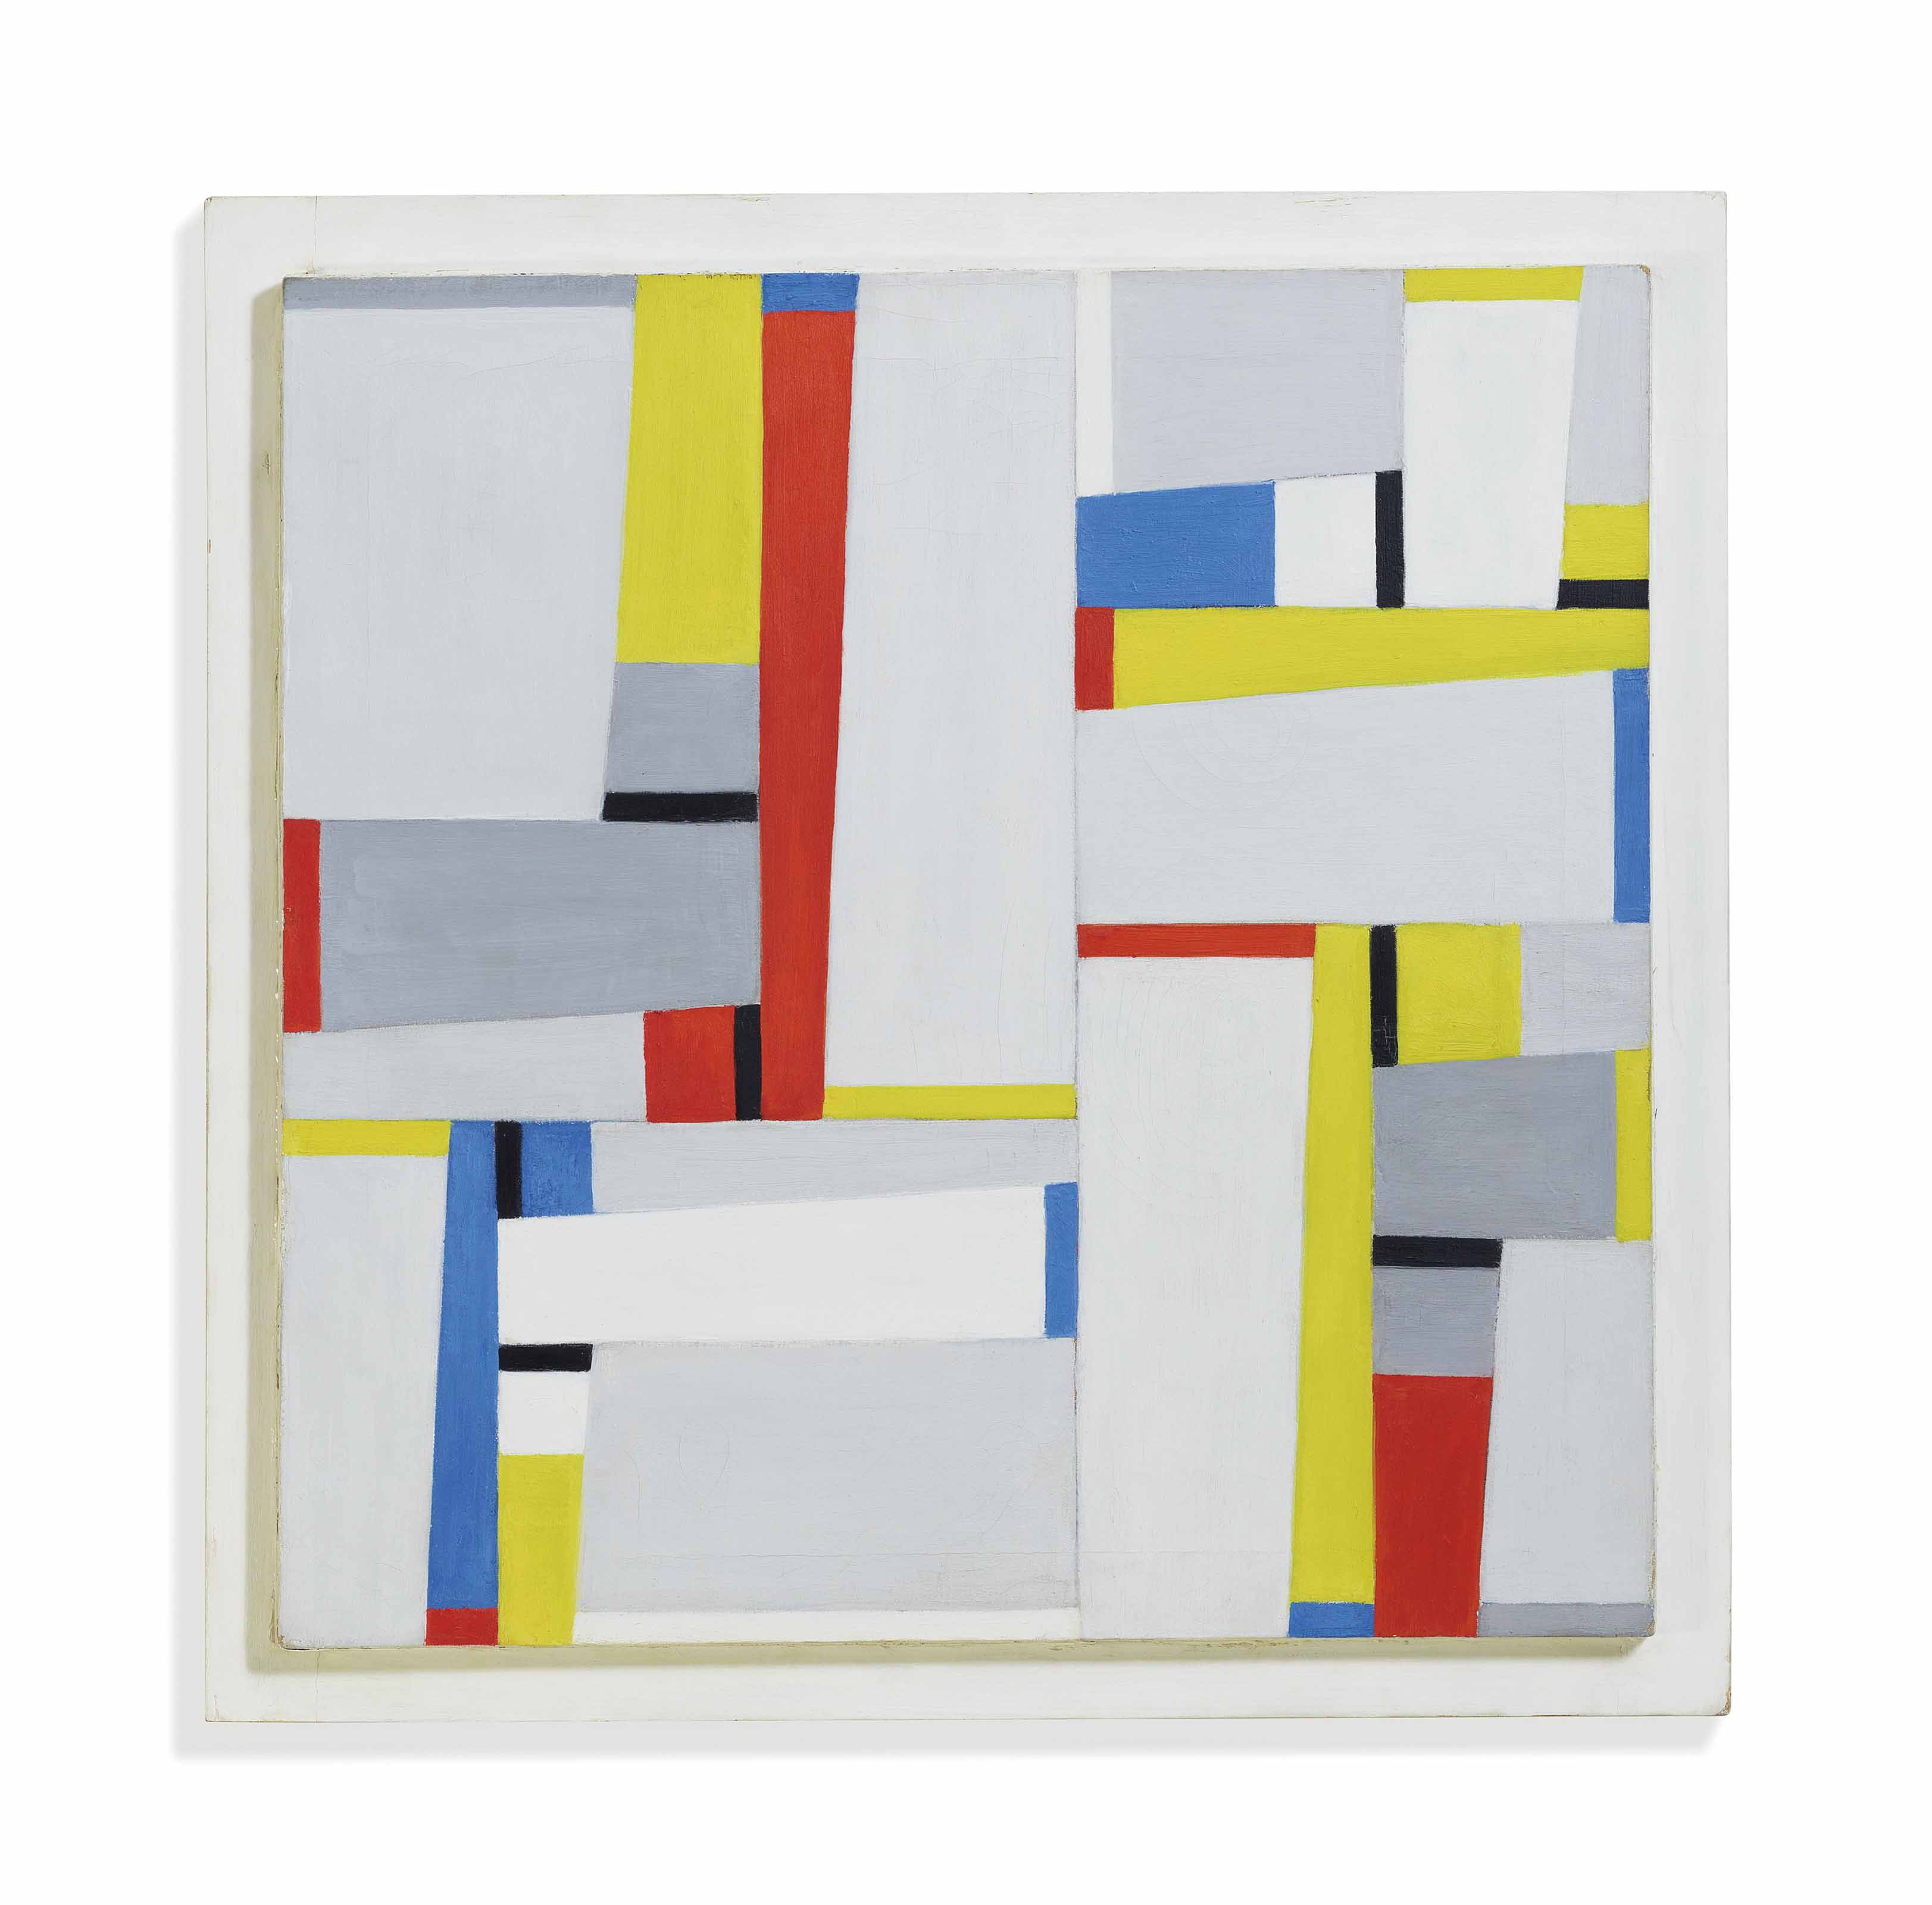 Relational Painting Nr. 96, 1966